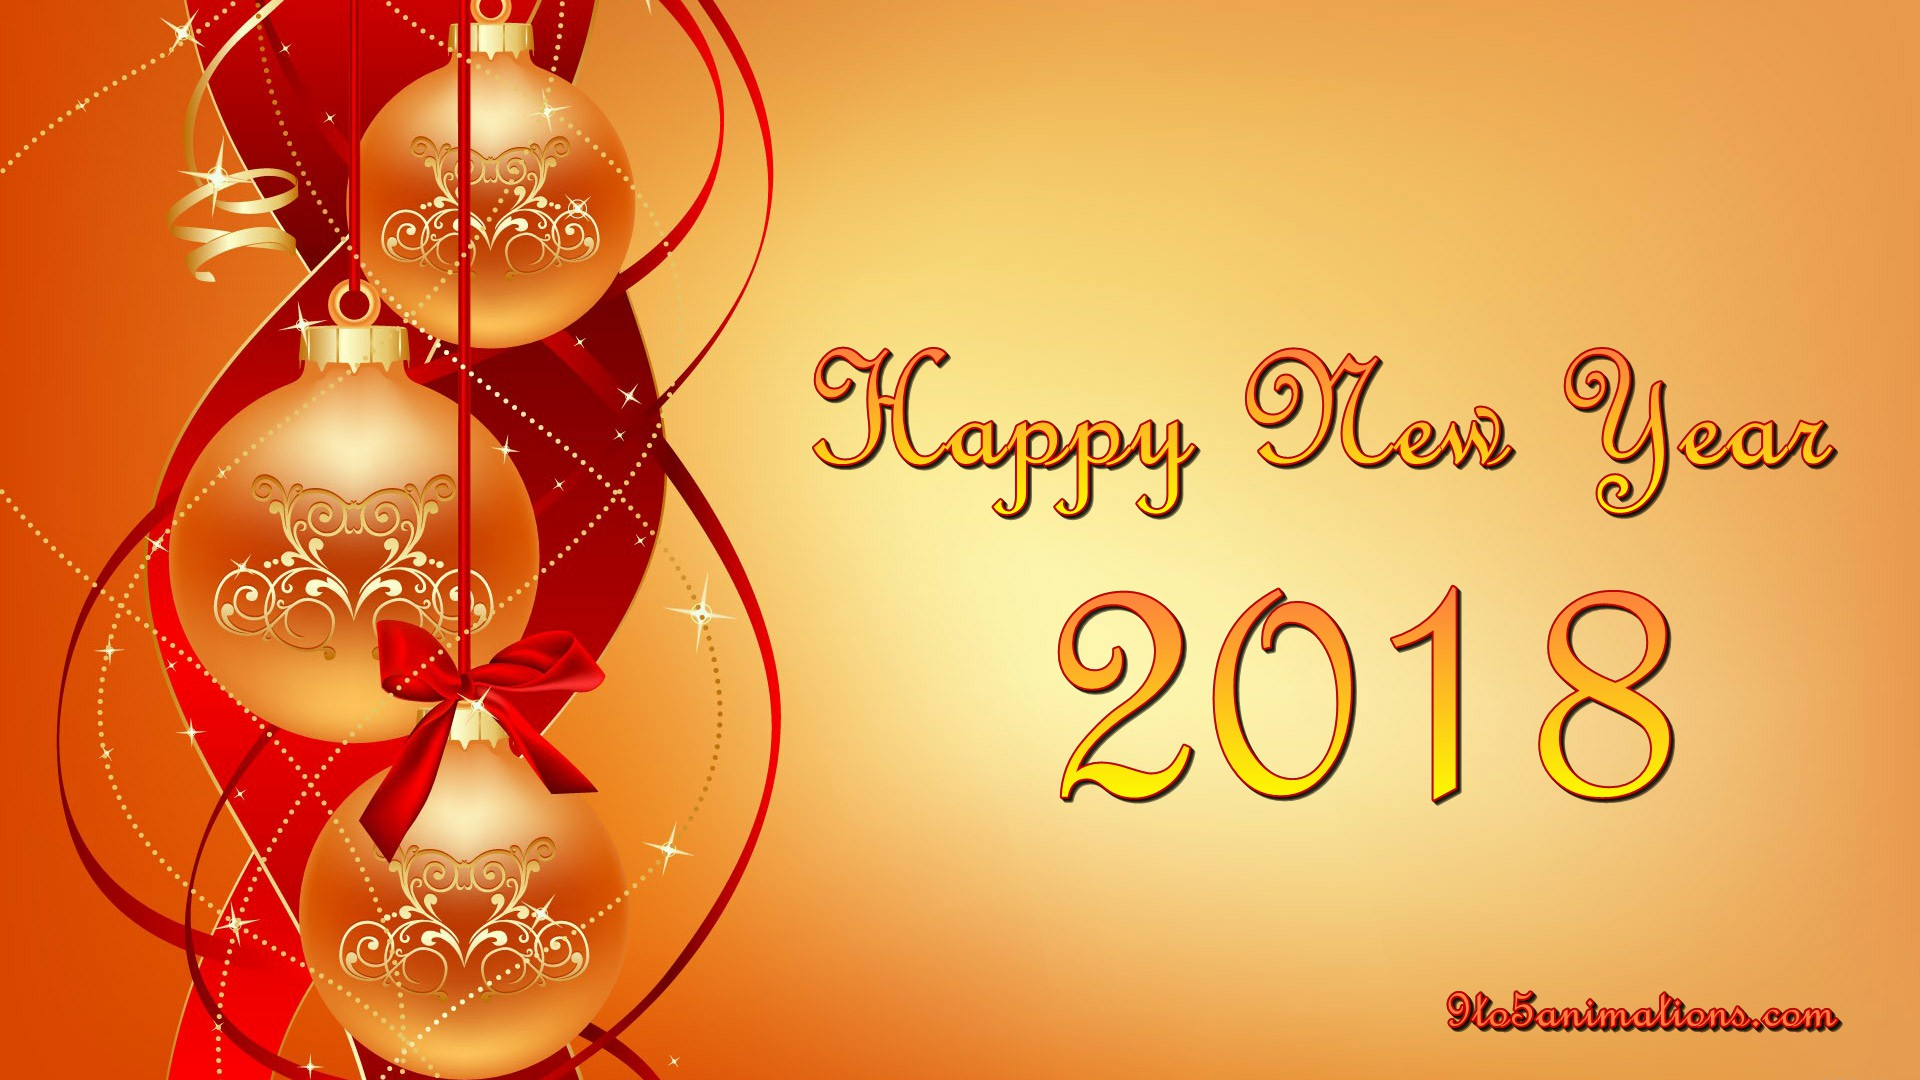 New Year Red Theme Wallpapers HD 9To5AnimationsCom 1920x1080